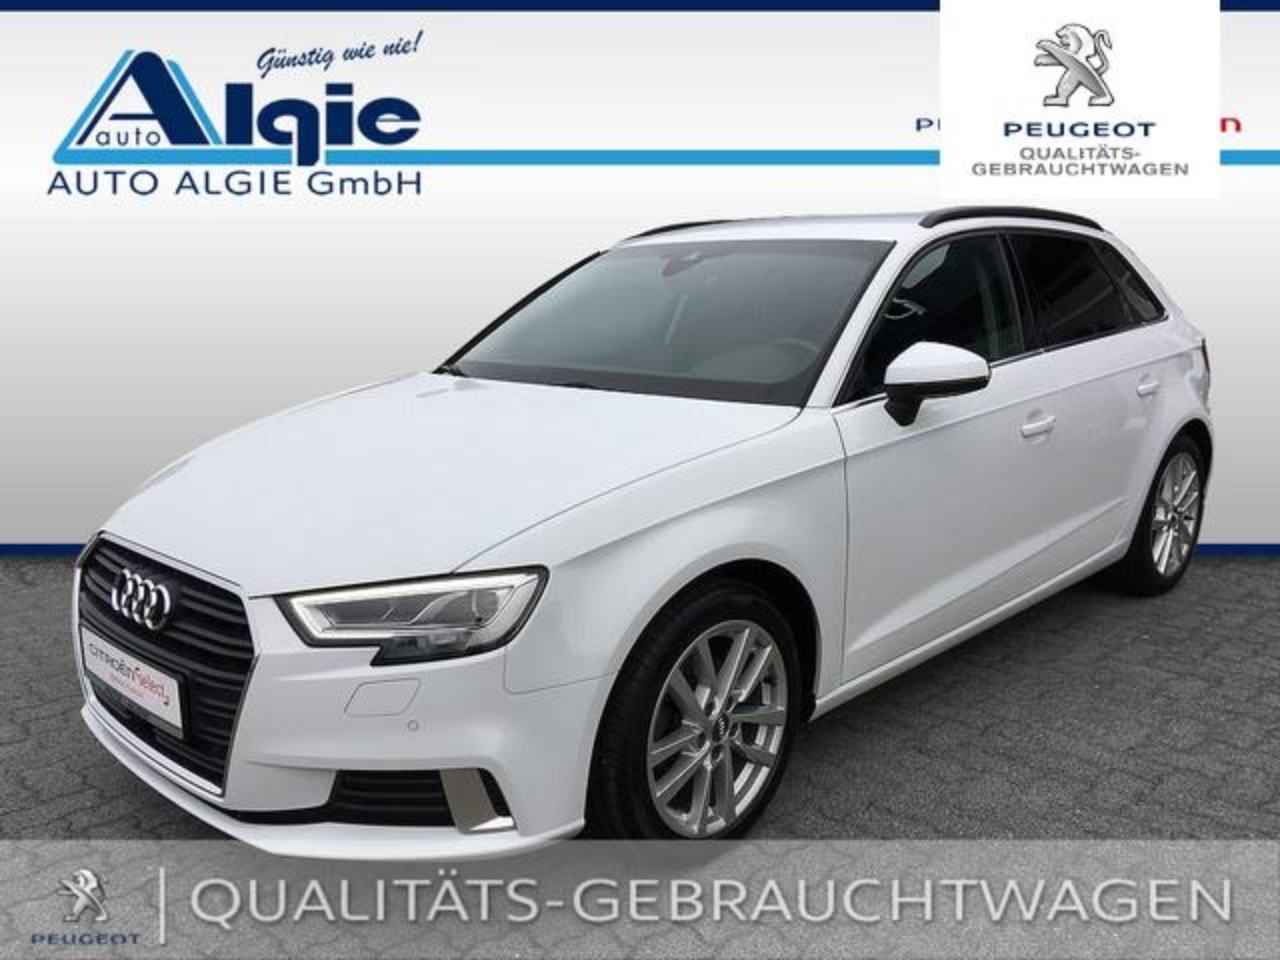 Audi A3 1.4 TFSI cylinder on demand ultra Sportback S t sp